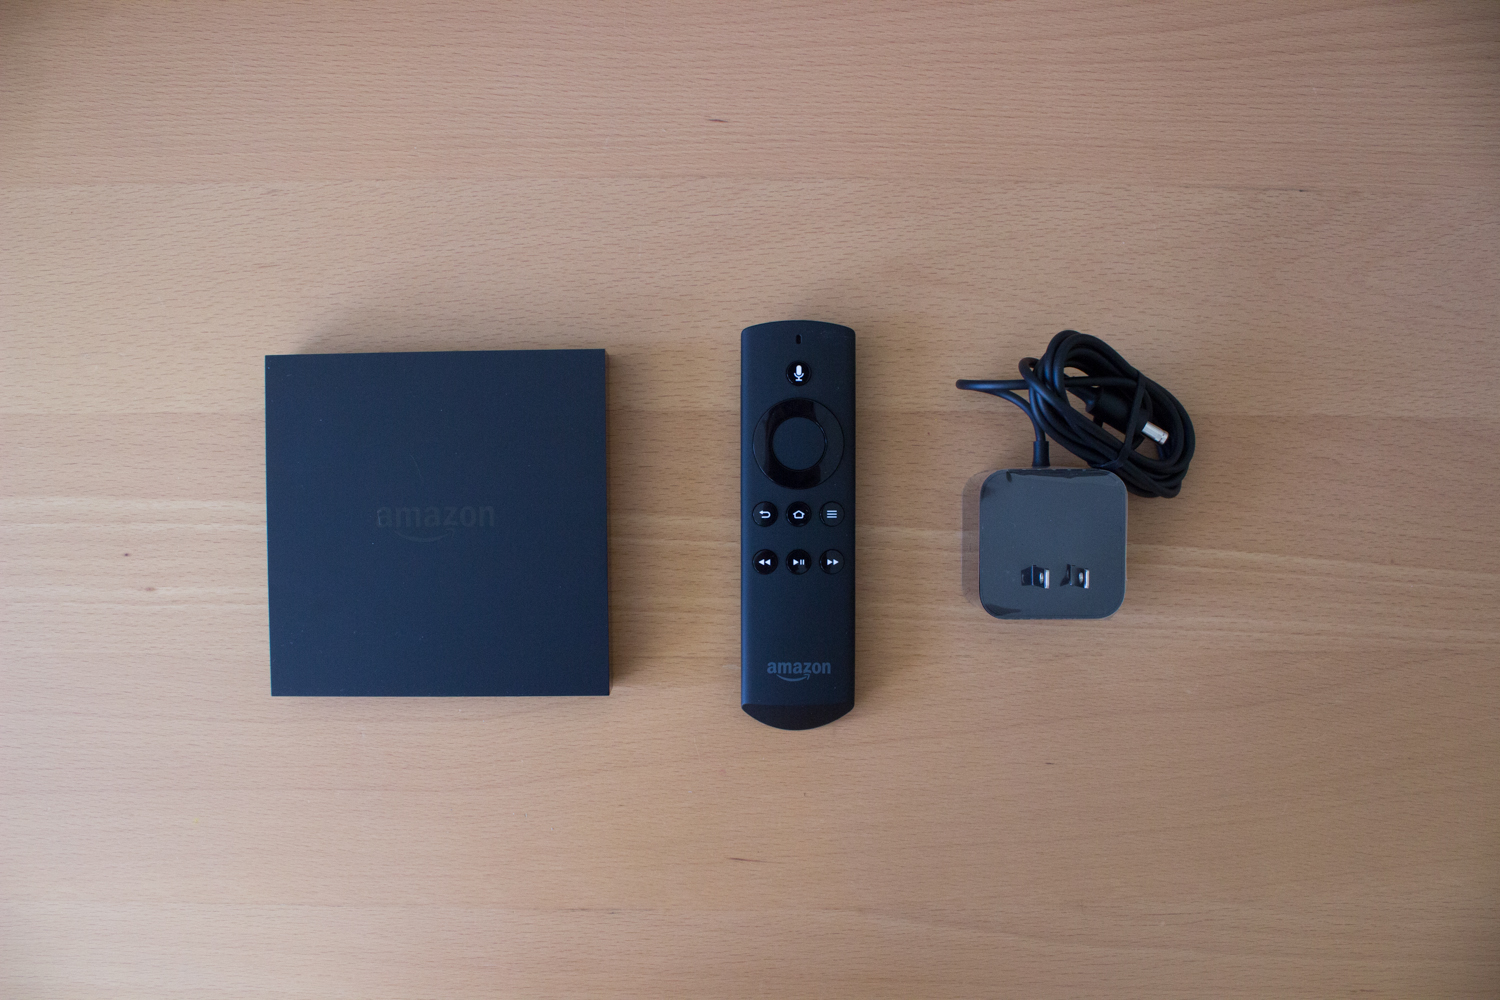 From left, the Fire TV box, the remote, and the power cable that come in the box.